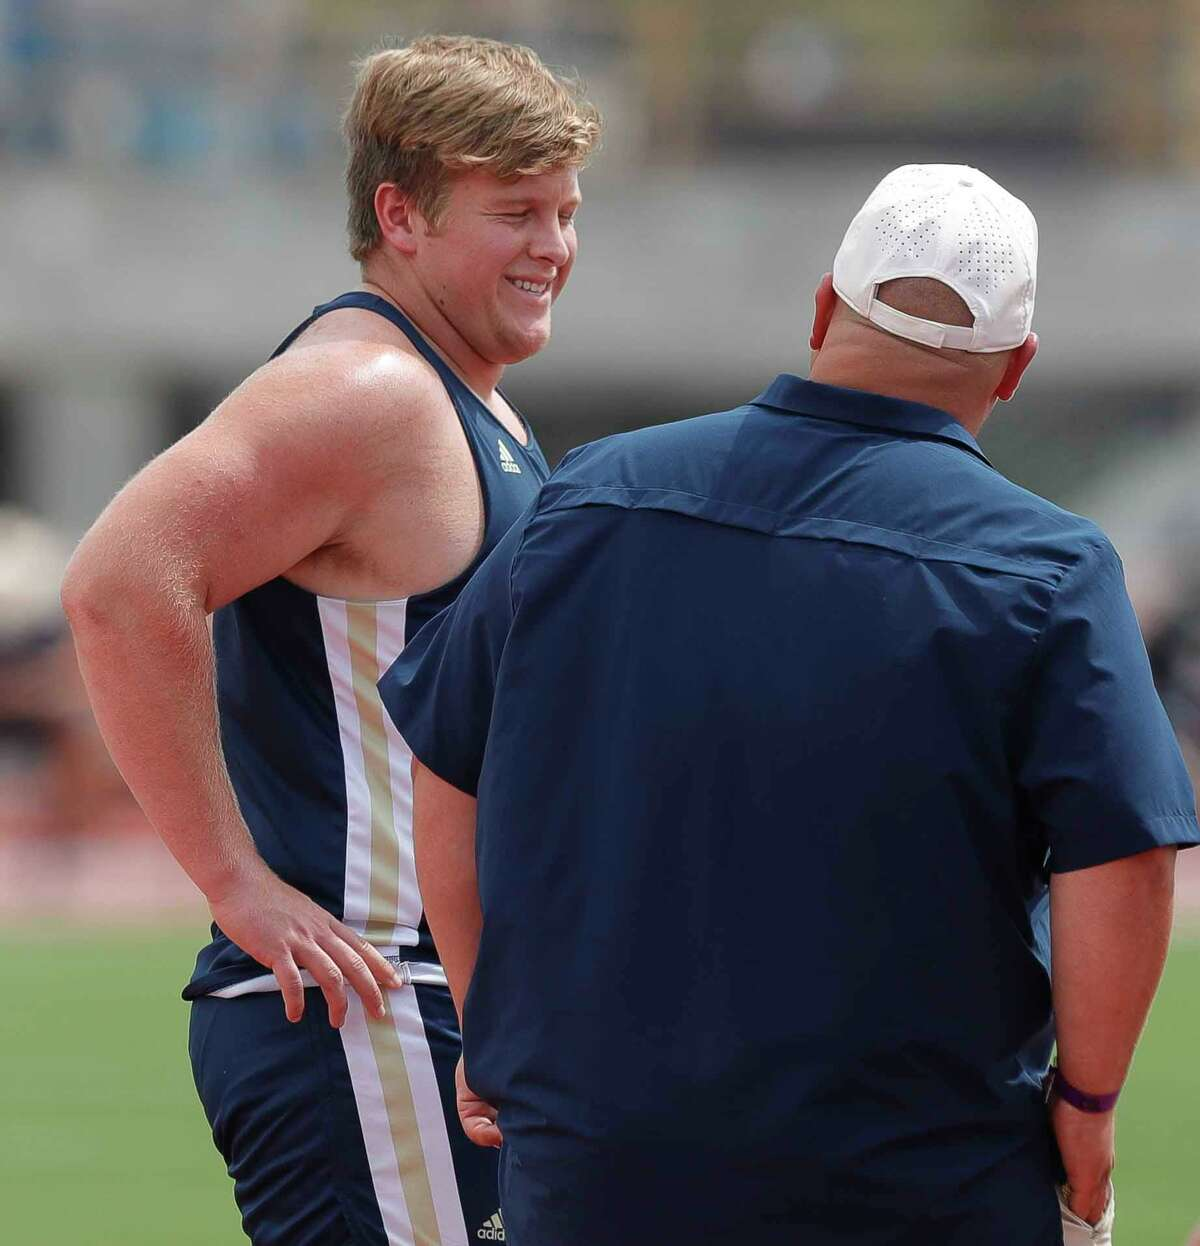 Chance Niesner of Lake Creek laughs during a break in the boys discus during the Class 5A UIL Track and Field Championships at Mike A. Myers Stadium, Friday, May 7, 2021, in Austin.